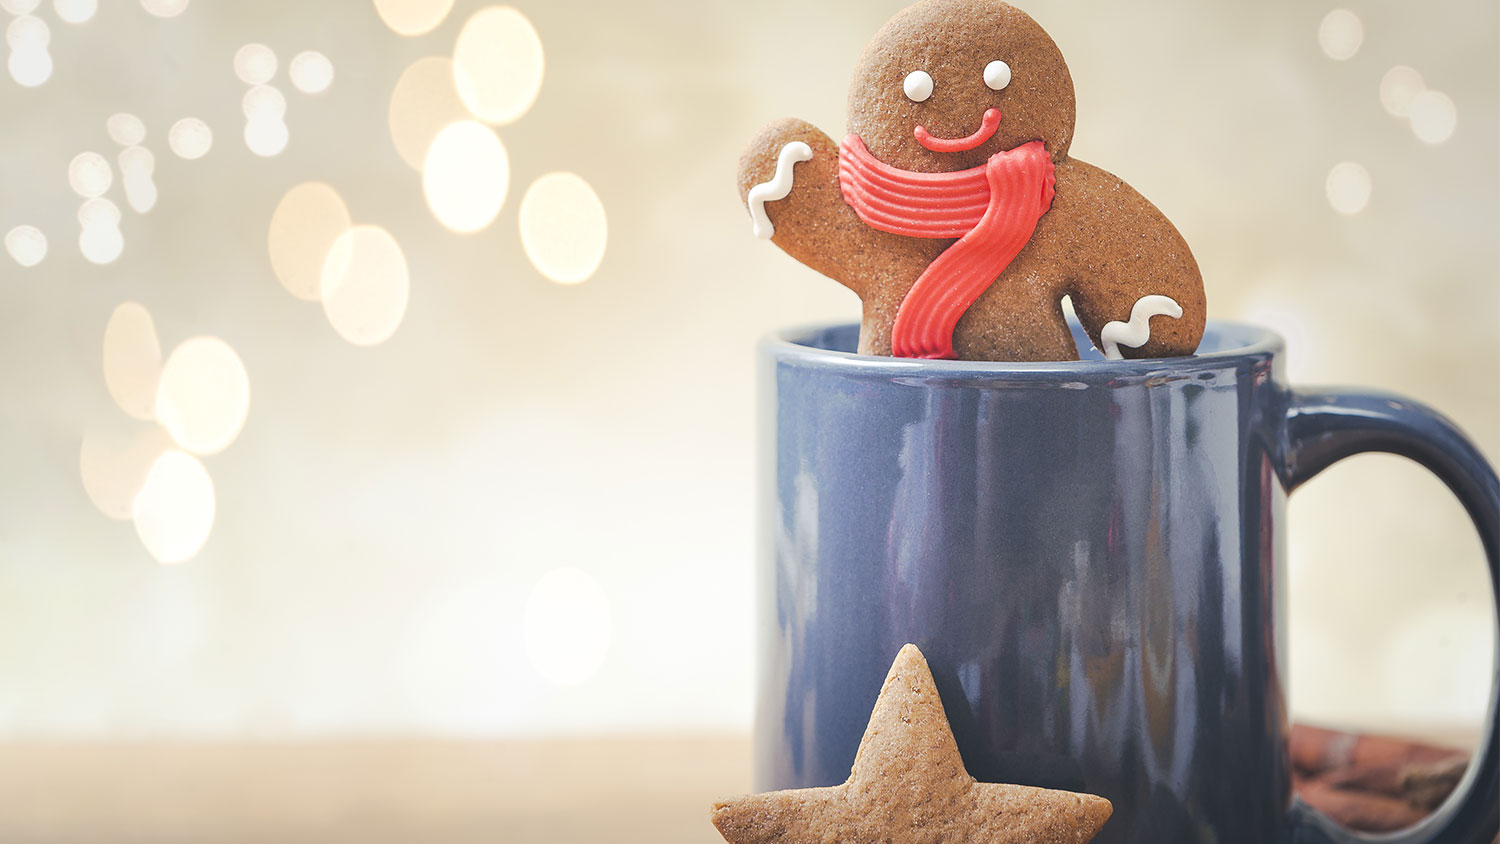 3 NEW HOLIDAY TRADITIONS FOR YOUR NEW HOME